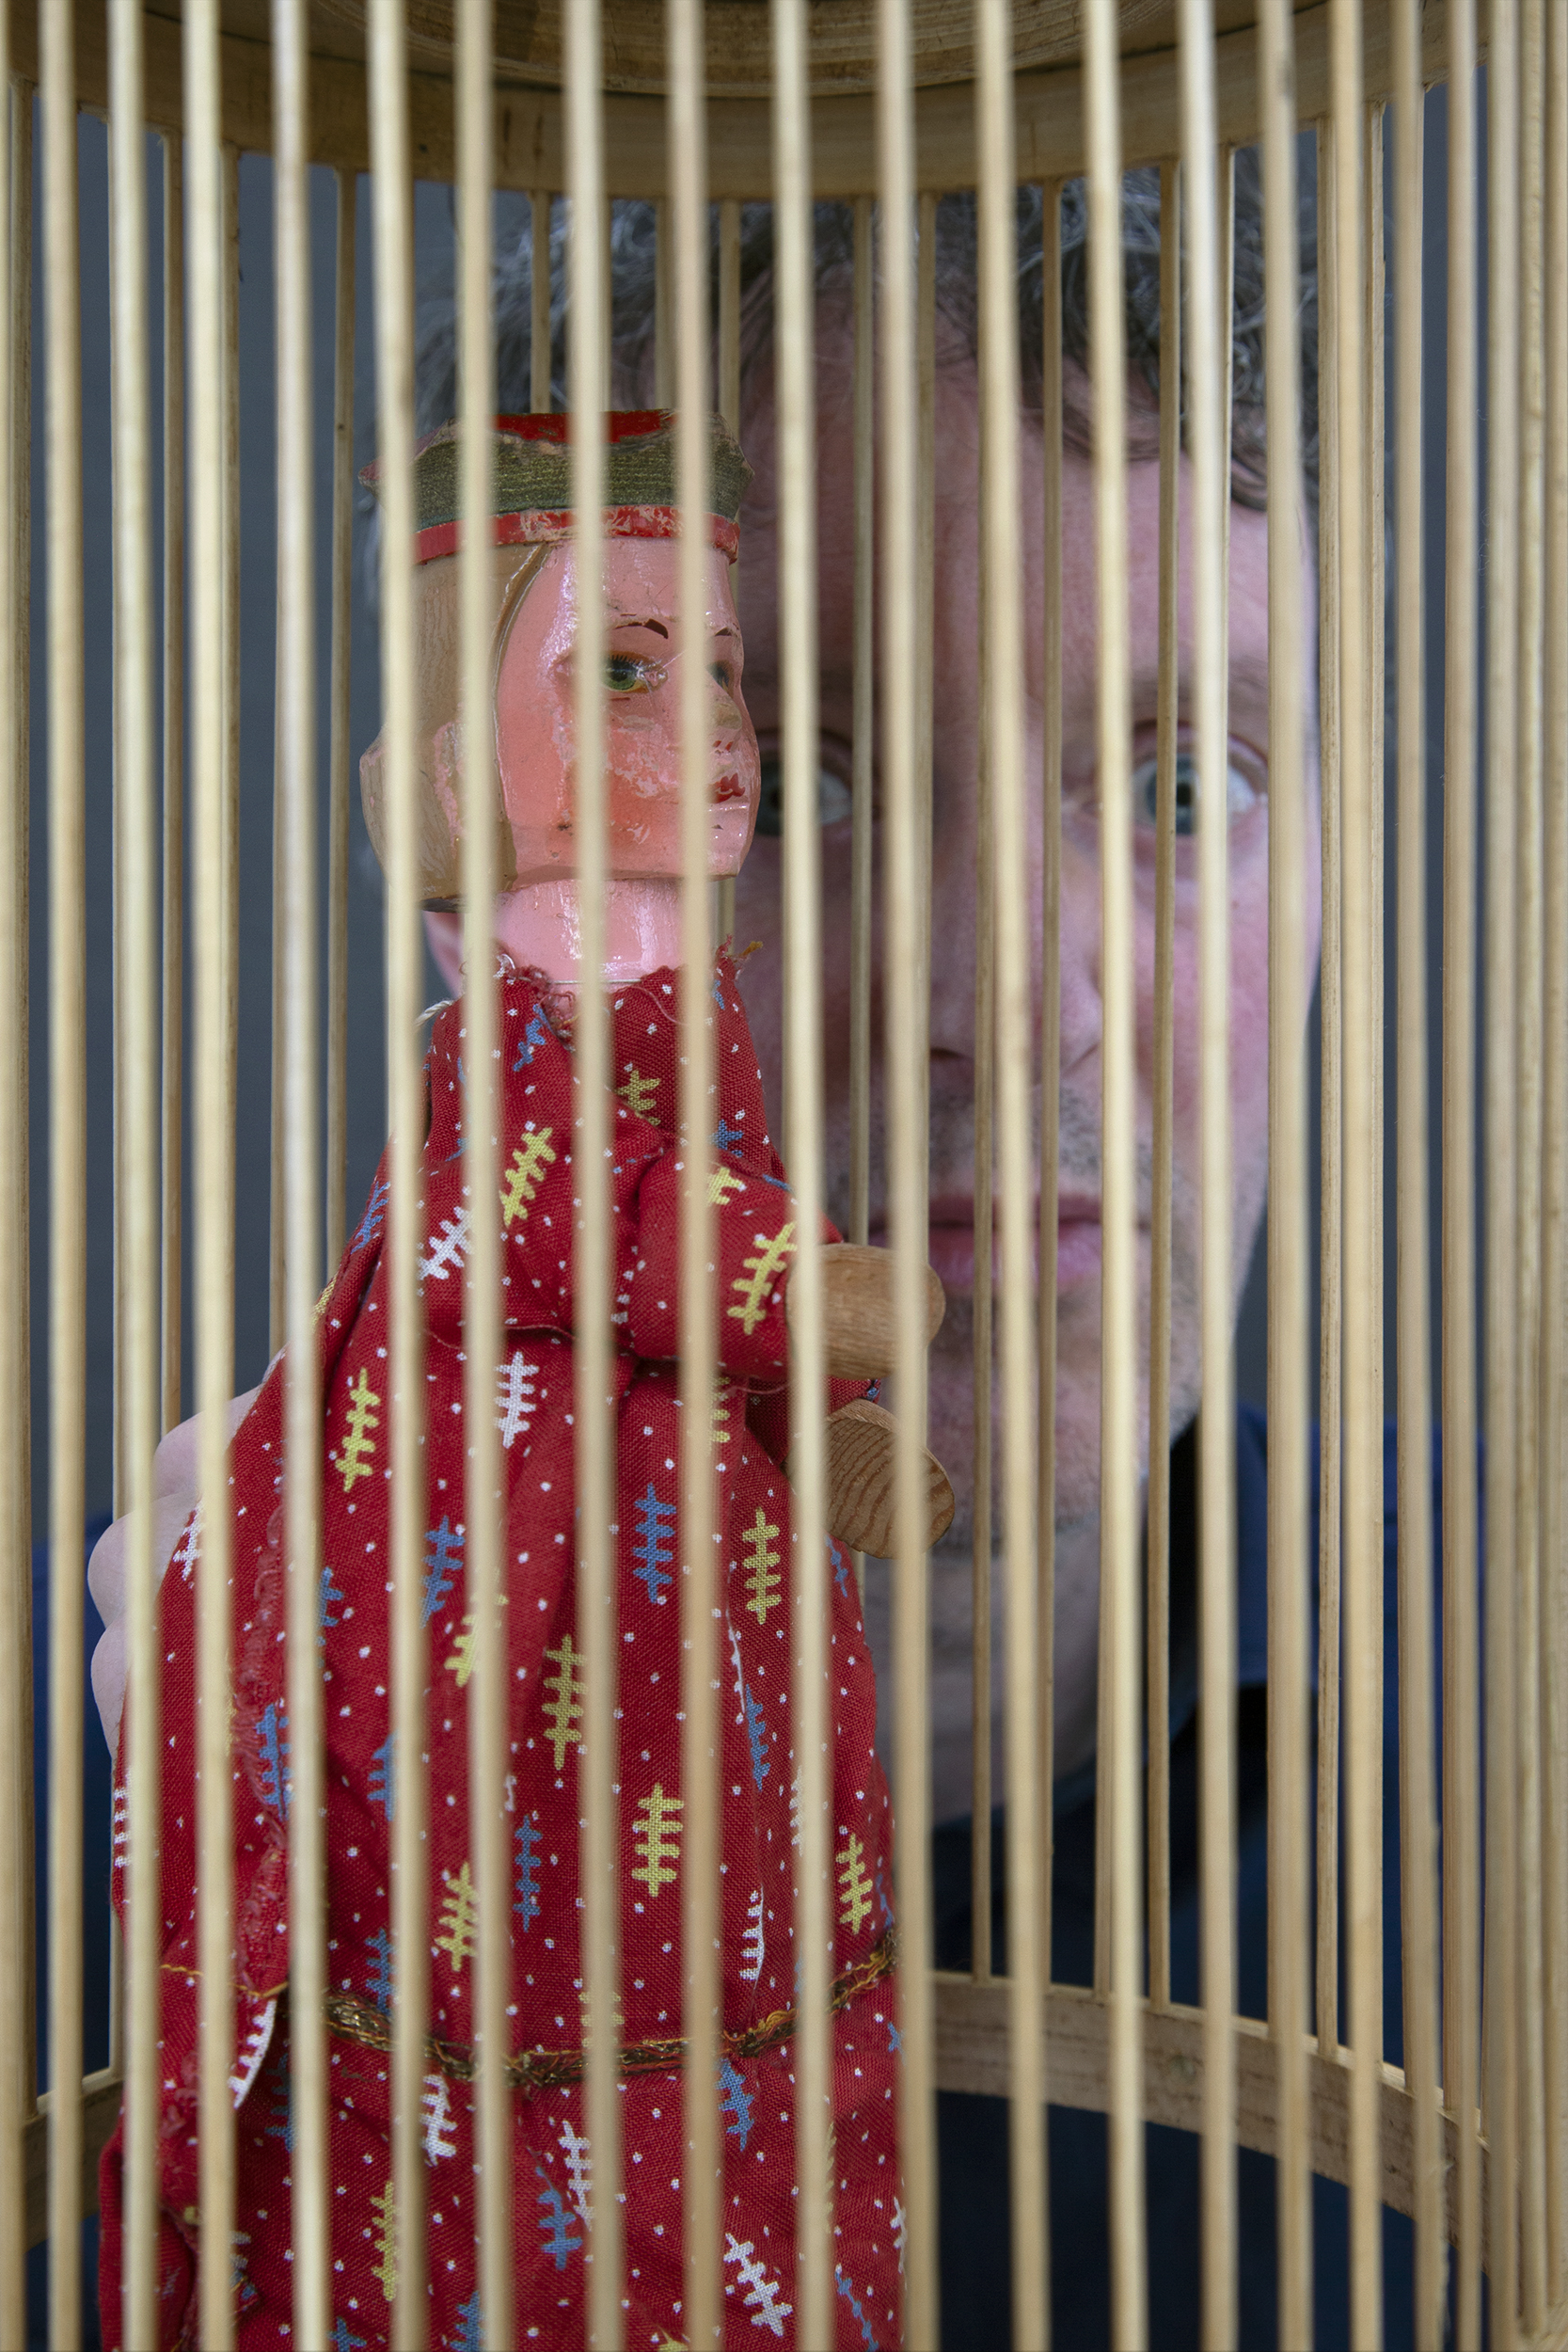 Cage, photograph by Wouter van Riessen